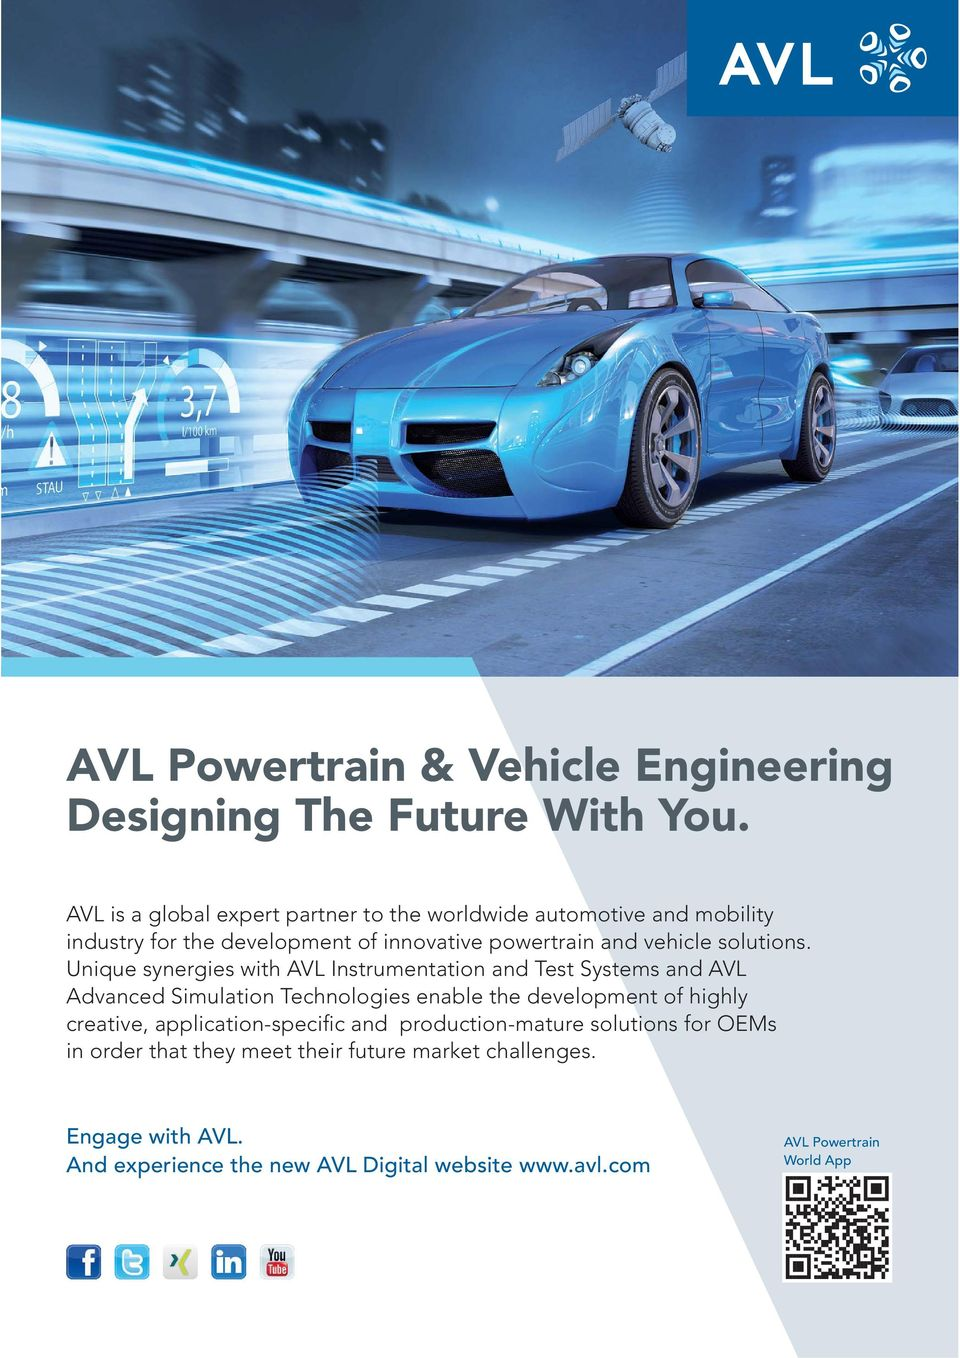 Unique synergies with AVL Instrumentation and Test Systems and AVL Advanced Simulation Technologies enable the development of highly creative,